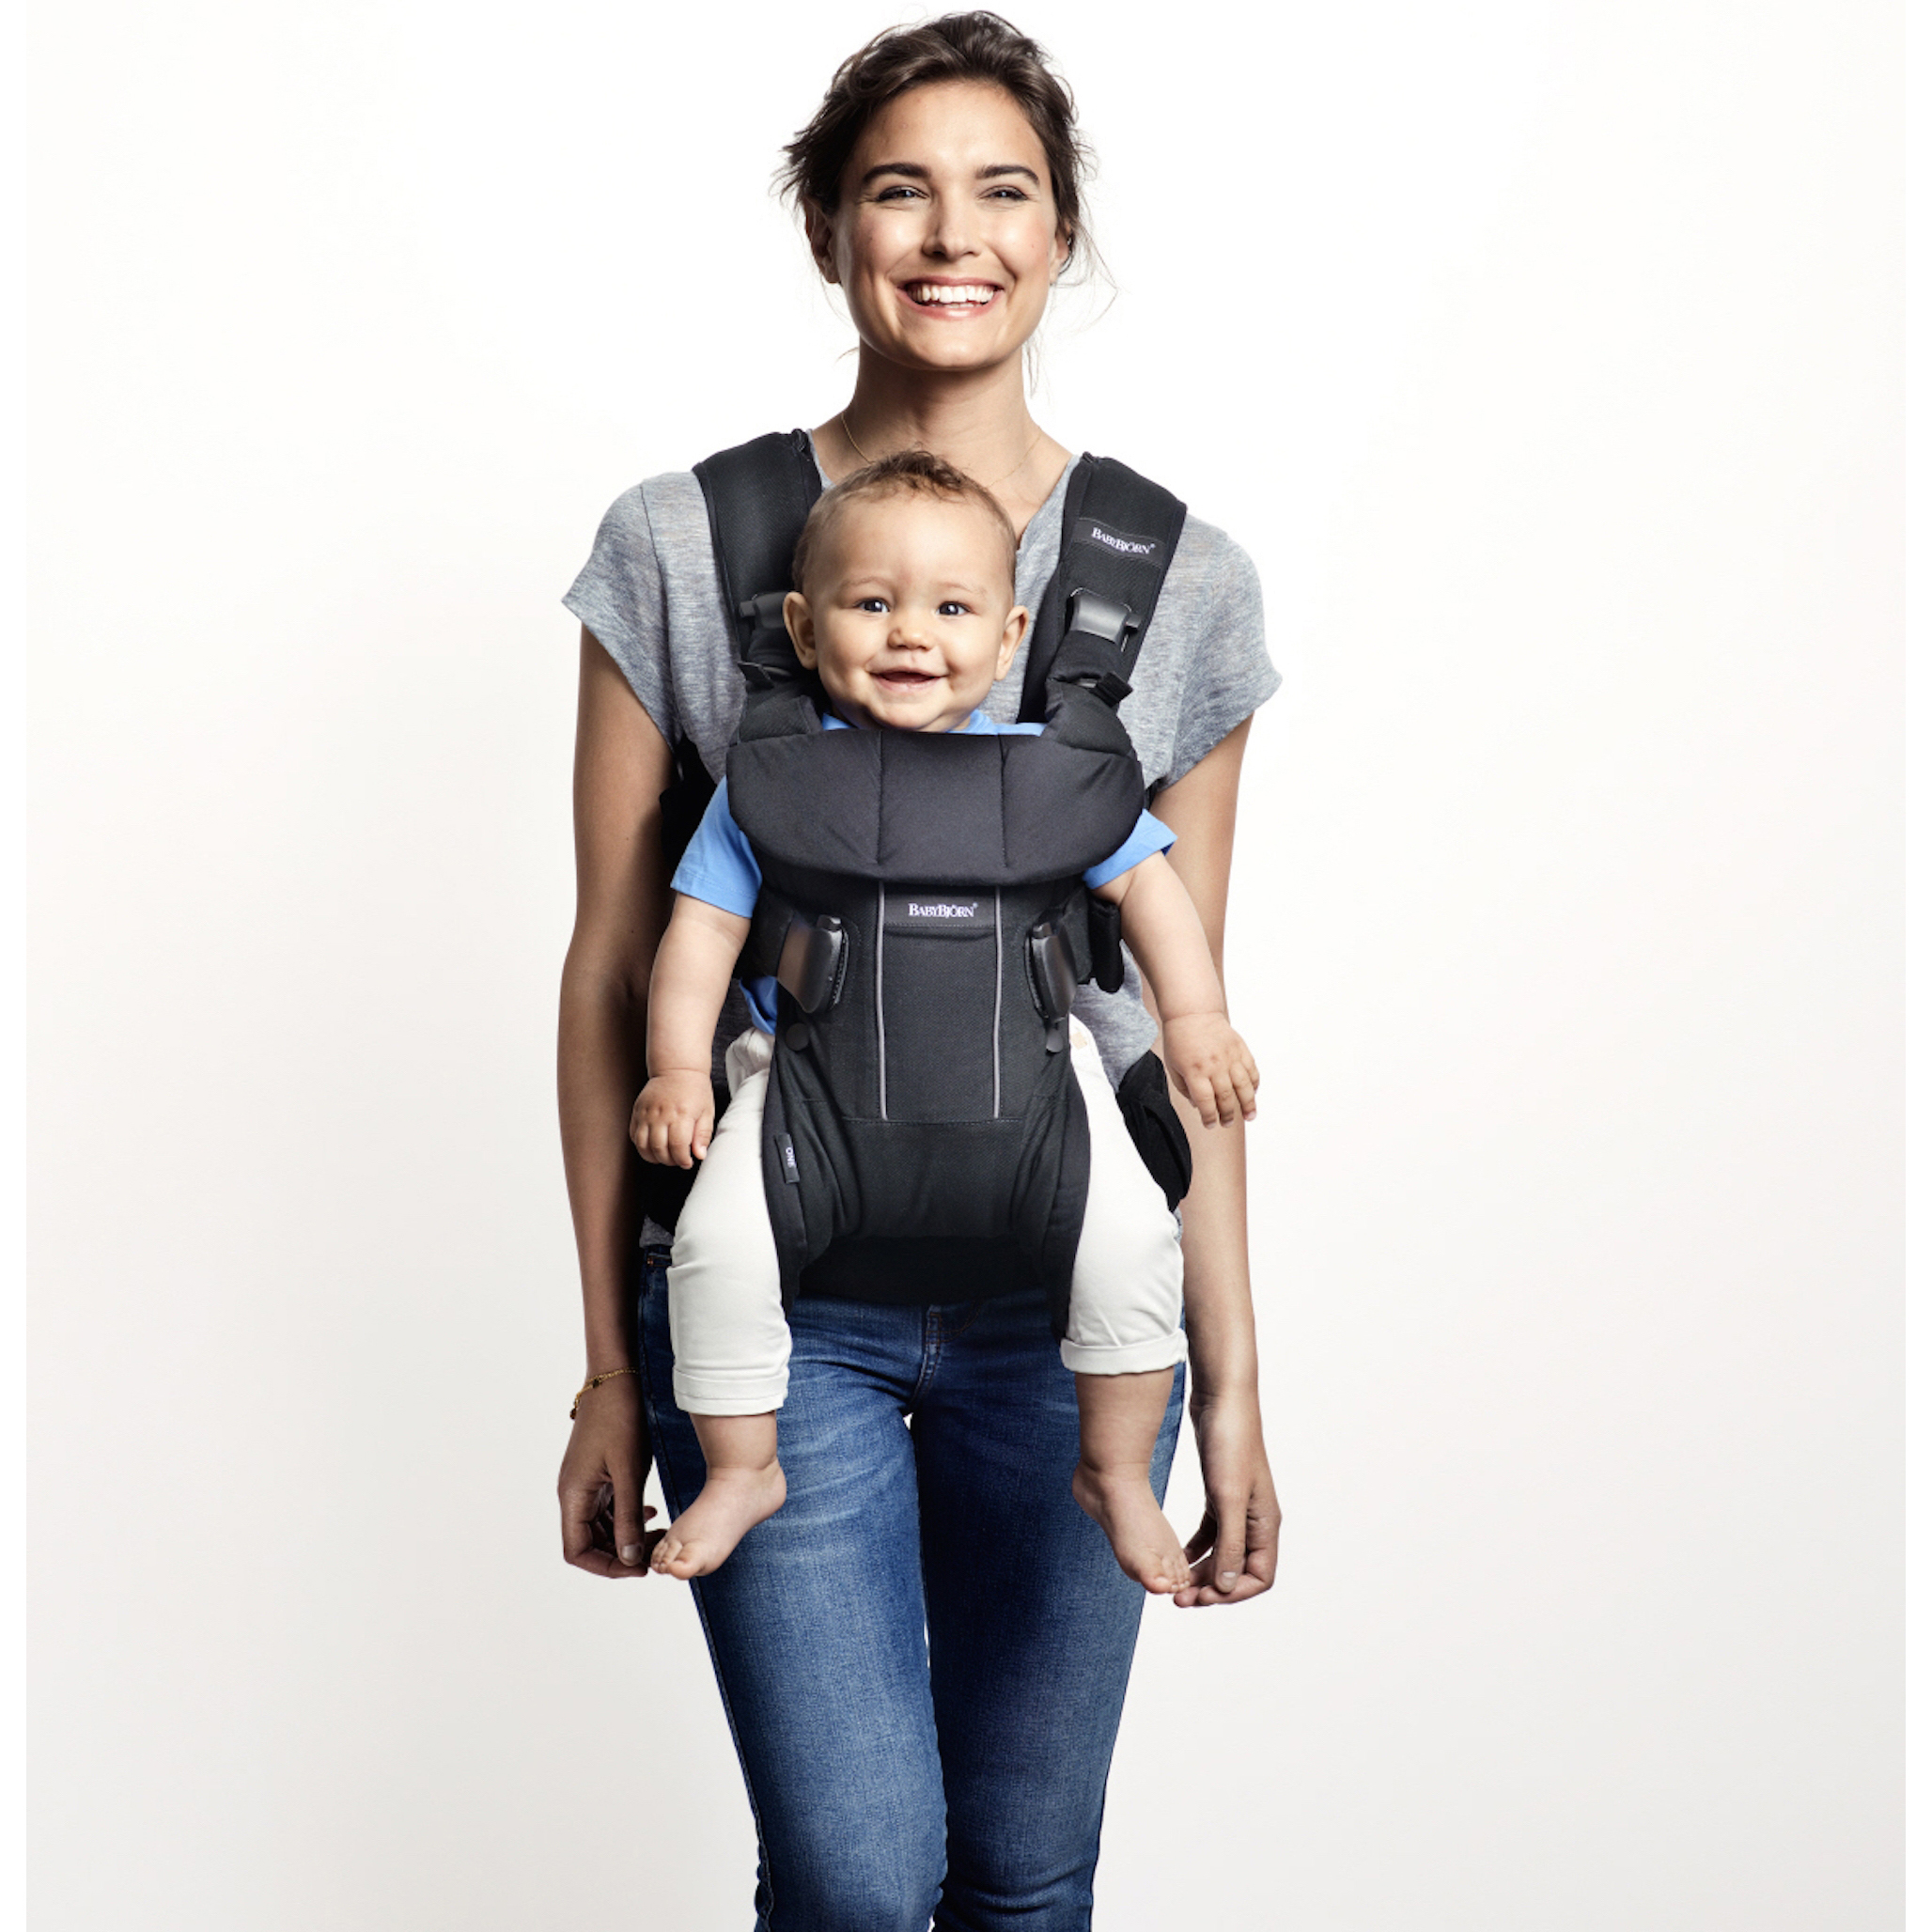 f5a357f3465 BABYBJORN Baby Carrier One Air - Black - Walmart.com